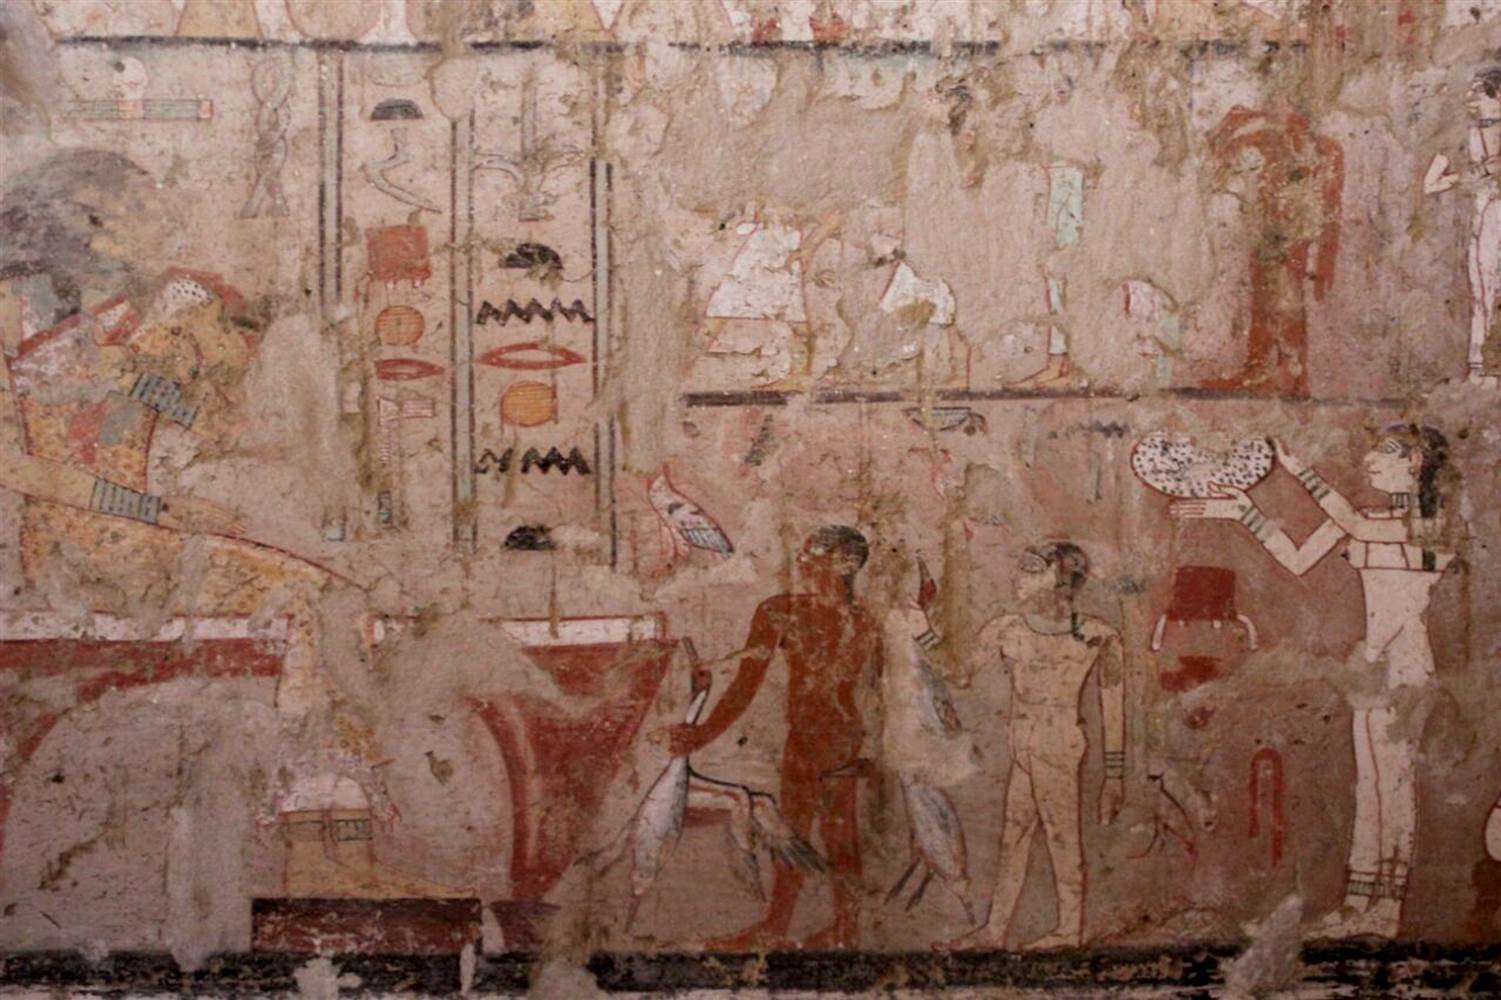 """Images painted in the tomb of a royal palace official believed to be known as """"Hetpet."""" Charlene Gubash / NBC News"""